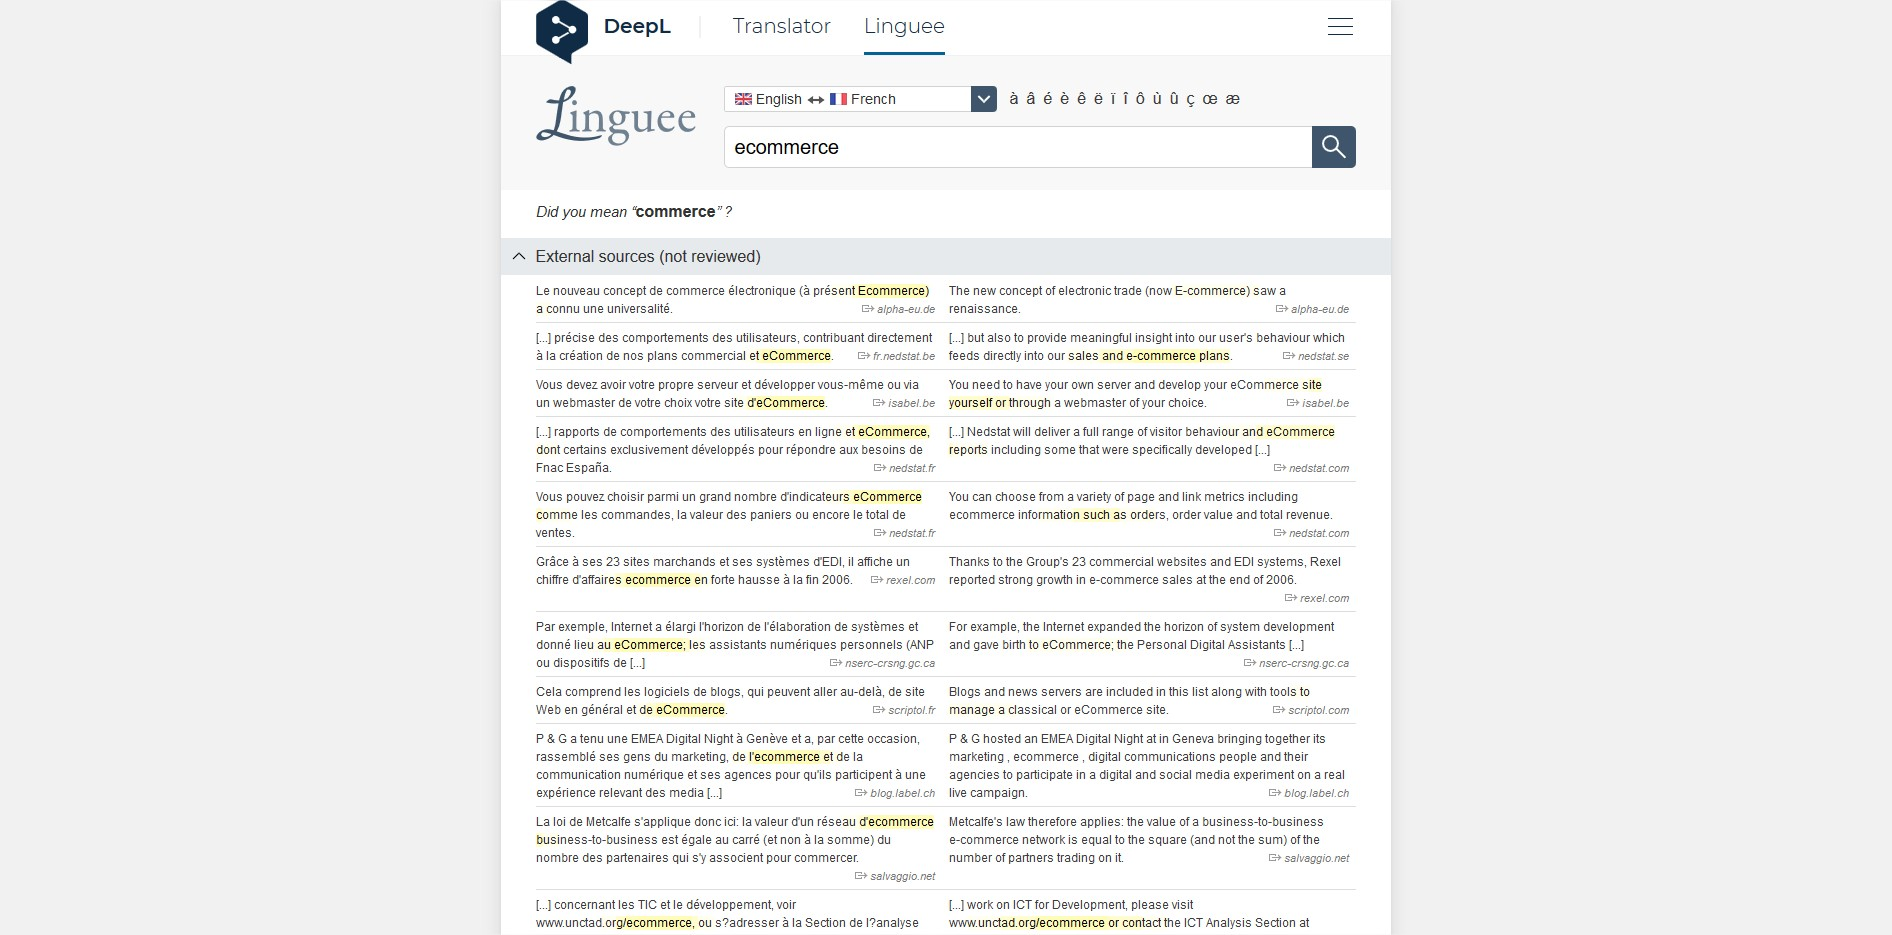 Linguee-Deepl-Dictionnaire-Traduction